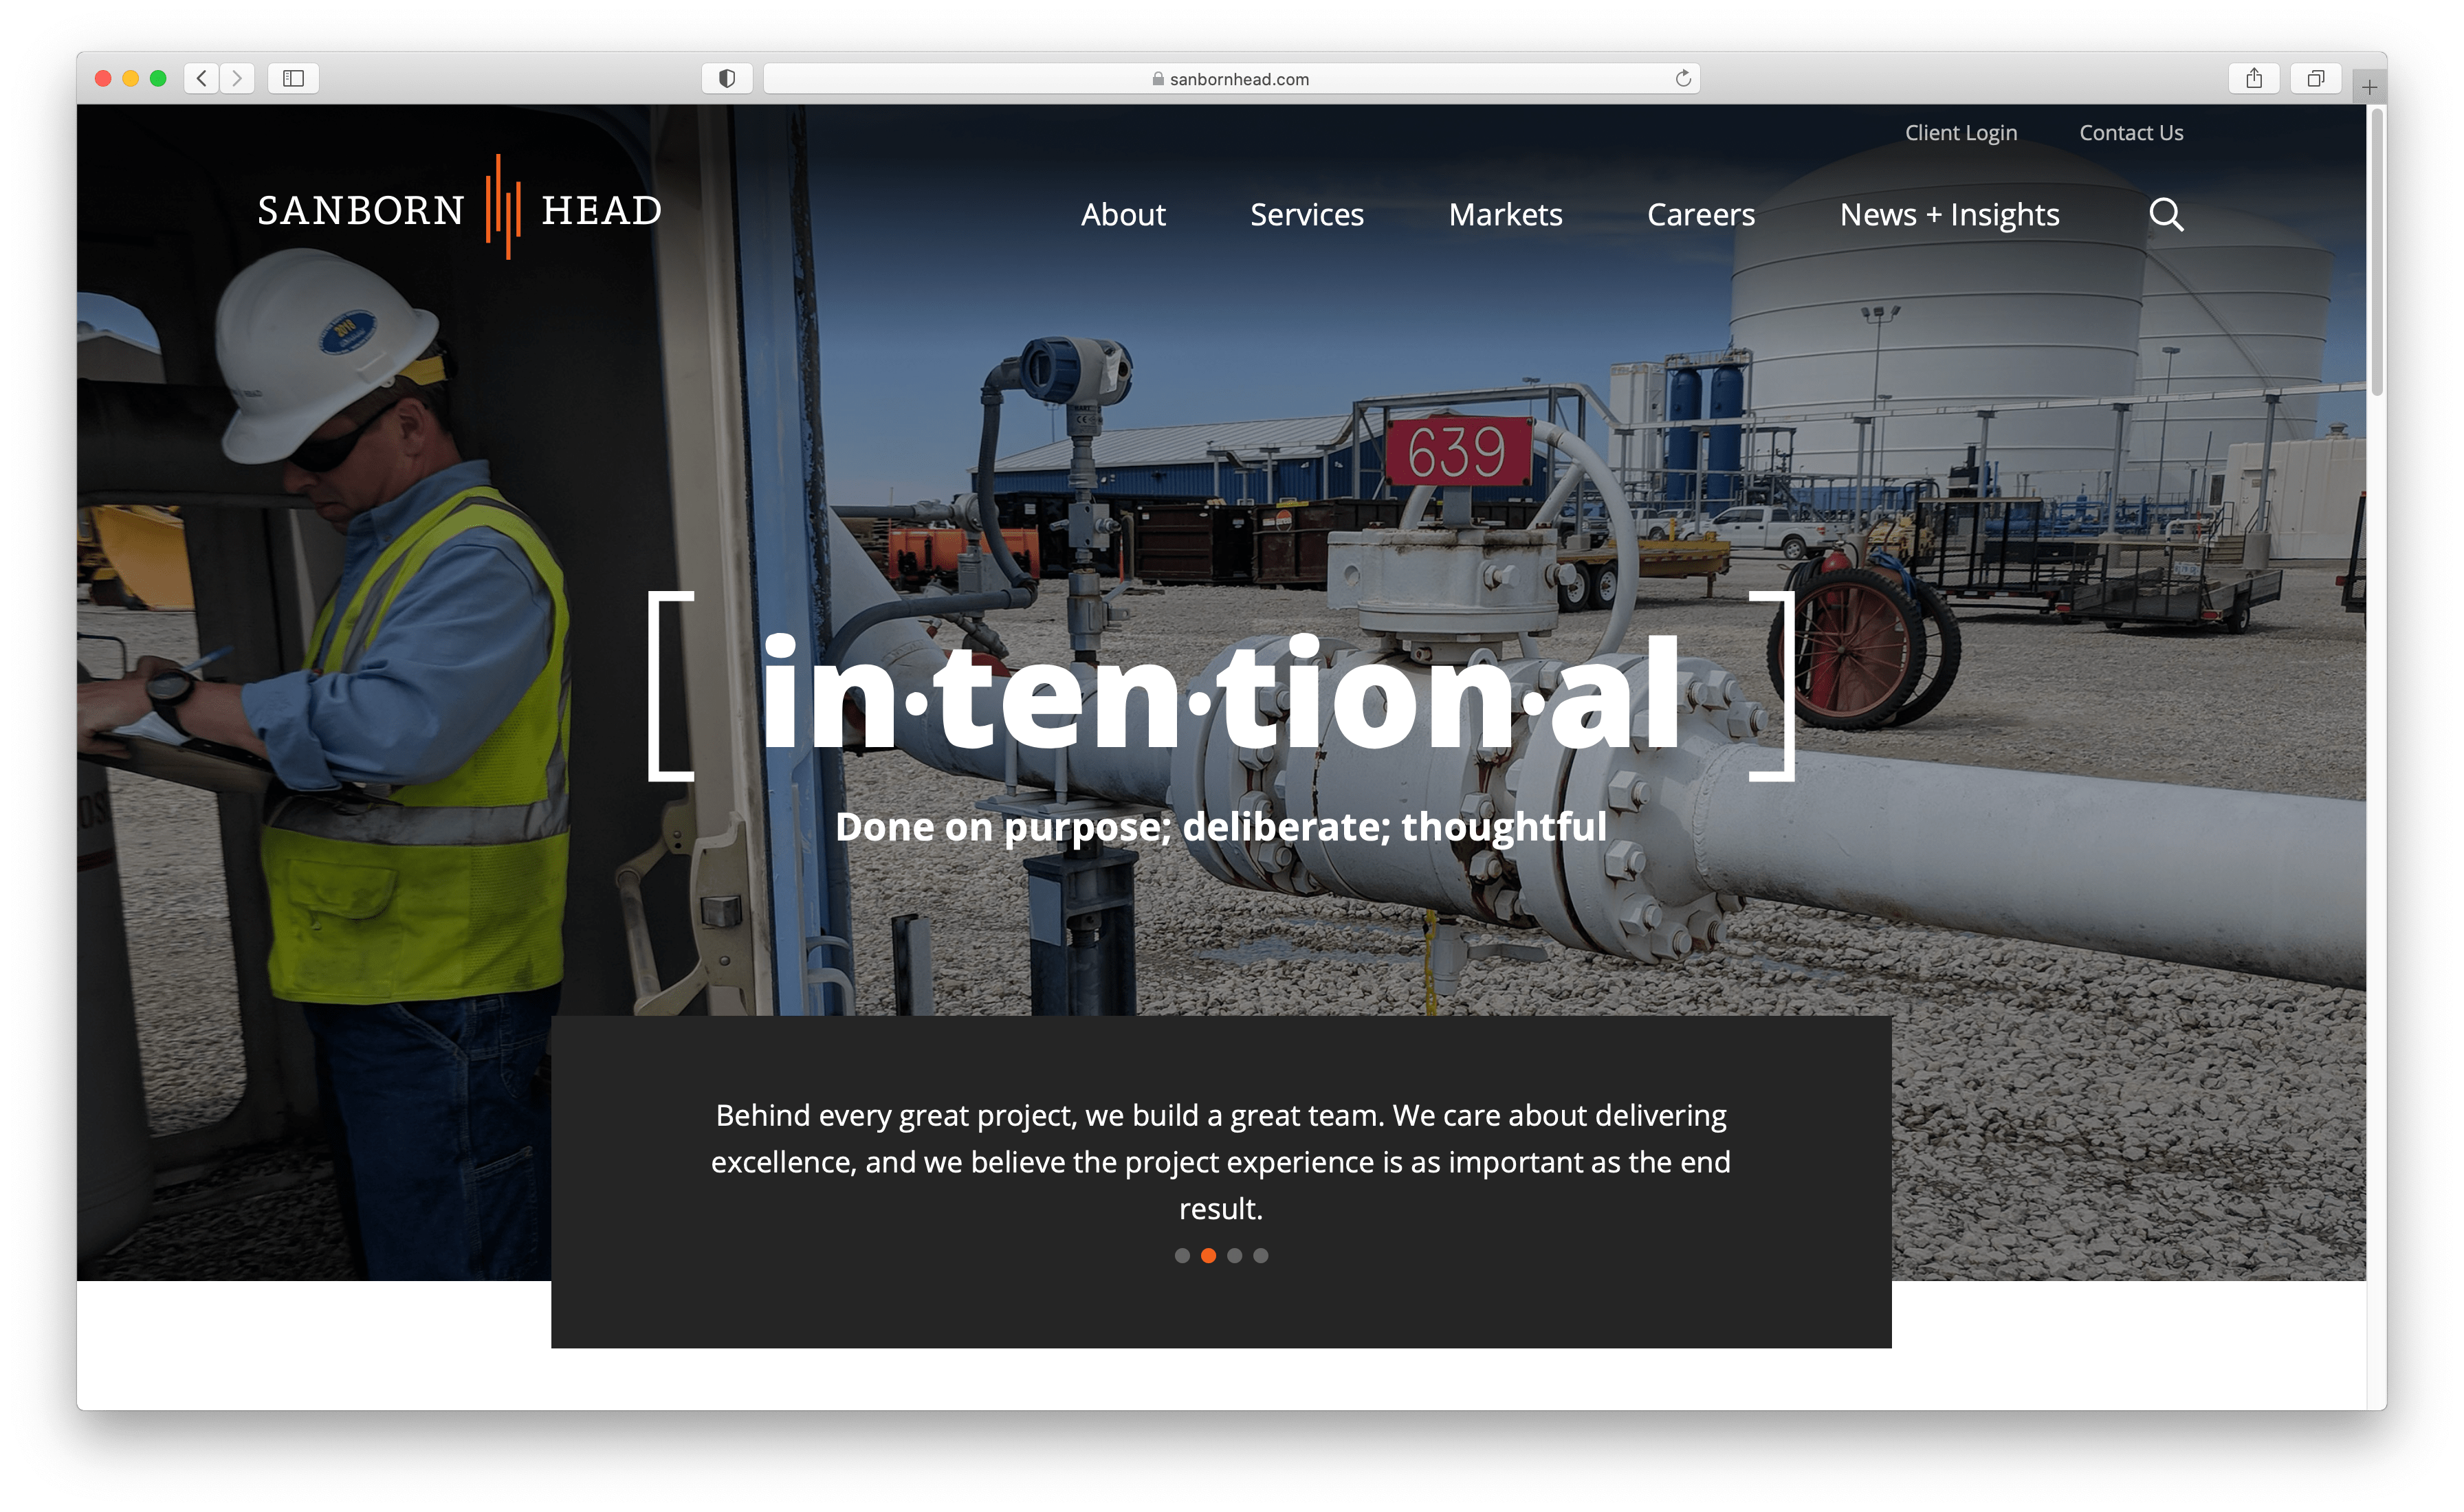 Sanborn Head Homepage is centered horizontally, which shows a symmetrical layout.